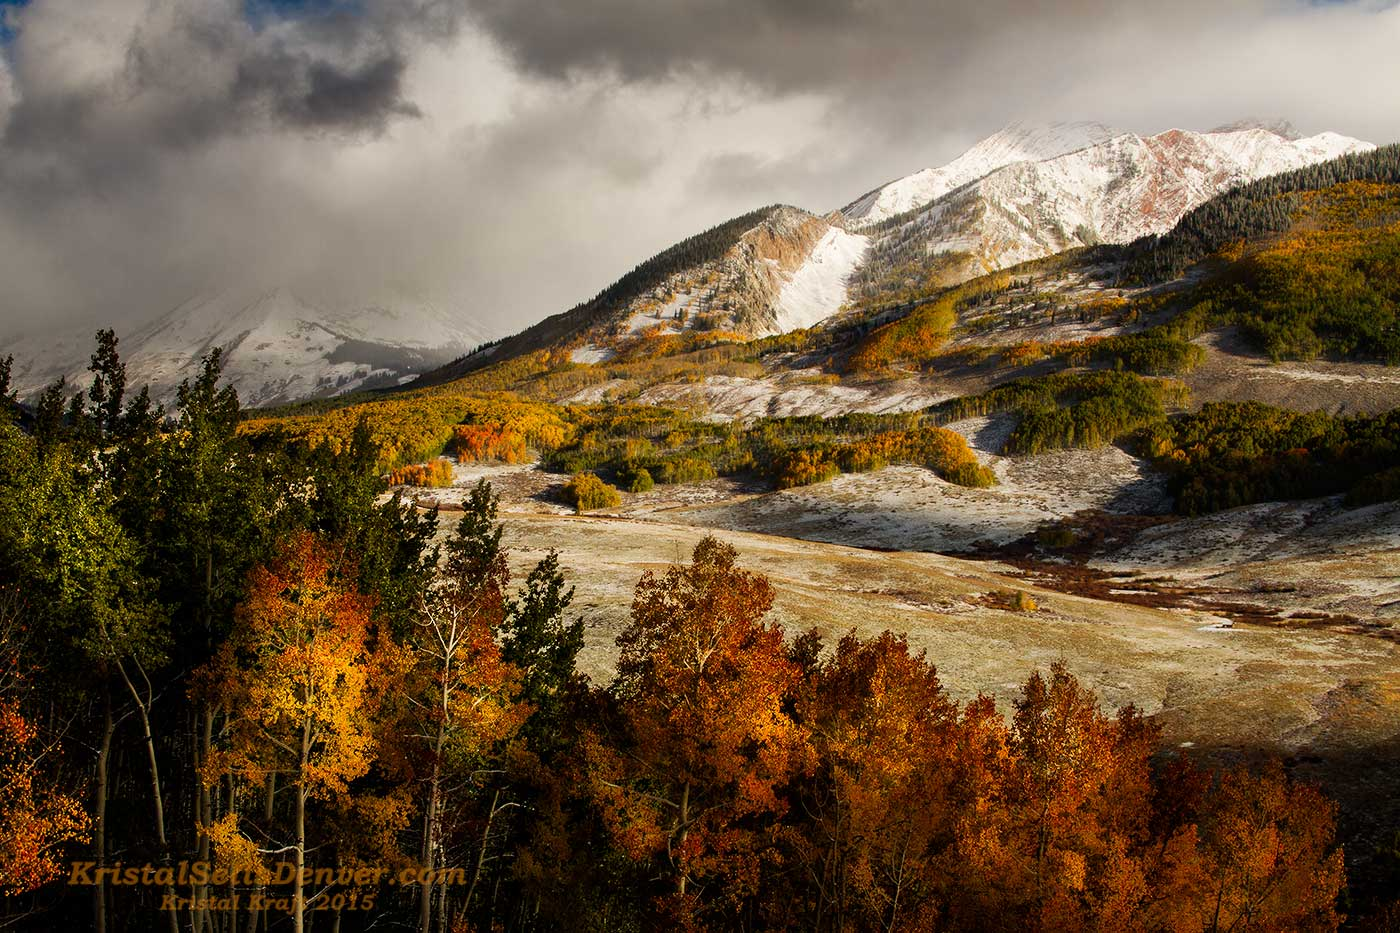 Fall arrives in the high country